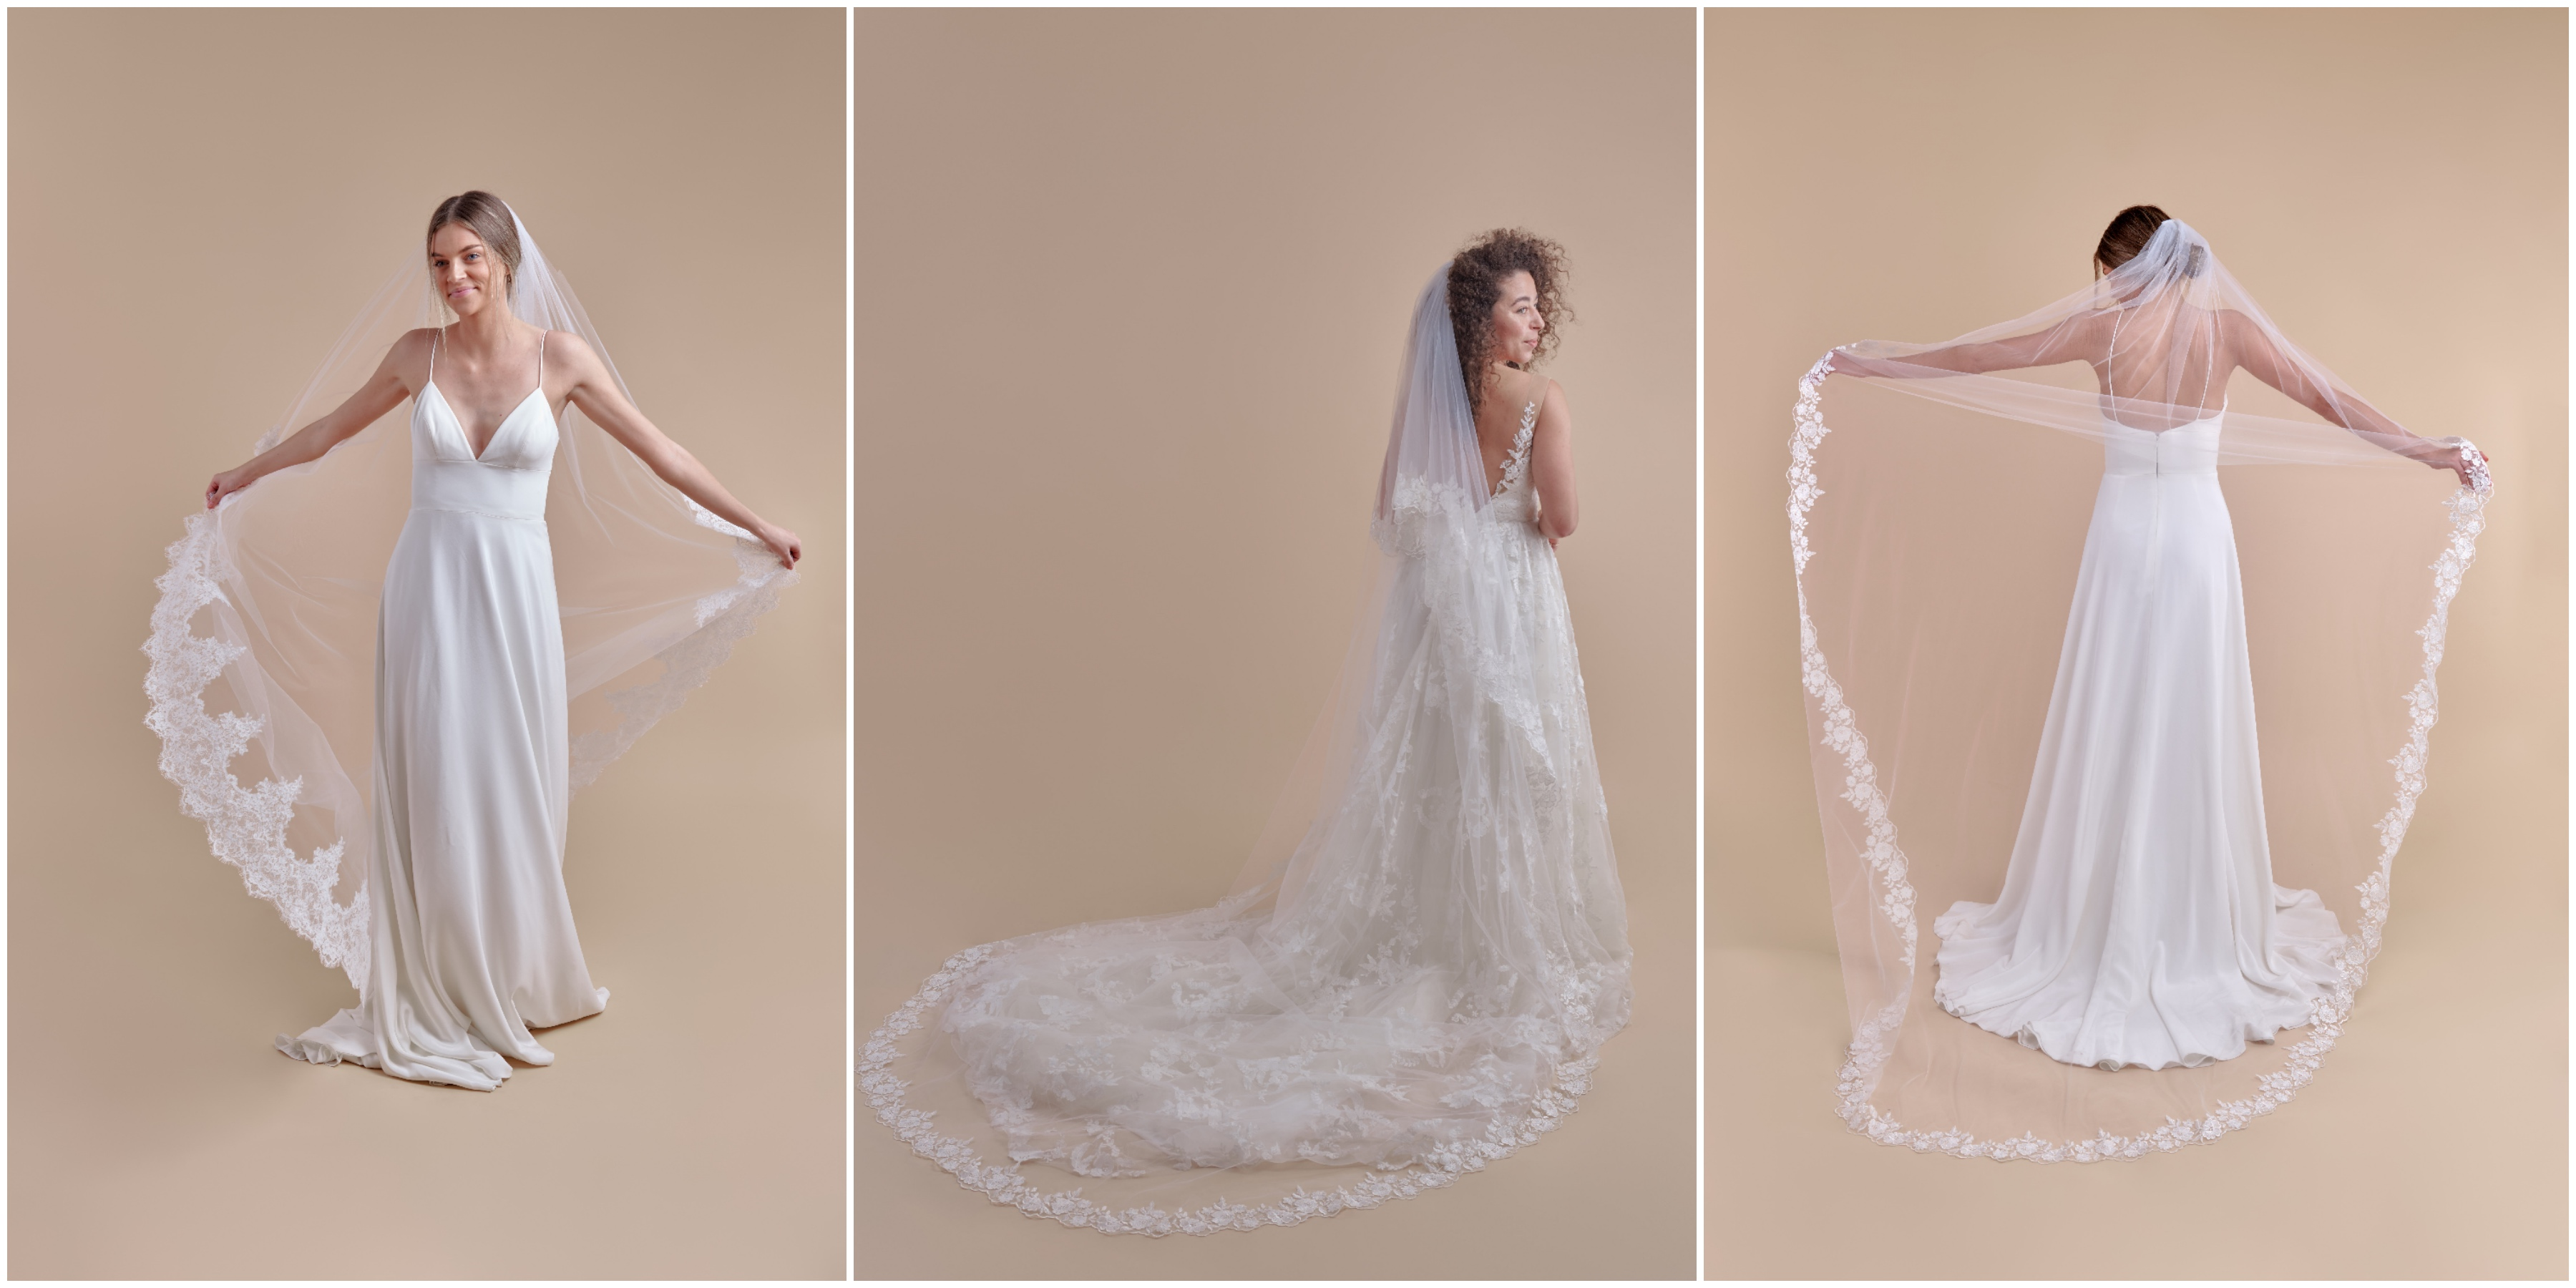 anomalie online wedding dress company launches semi-custom veil line